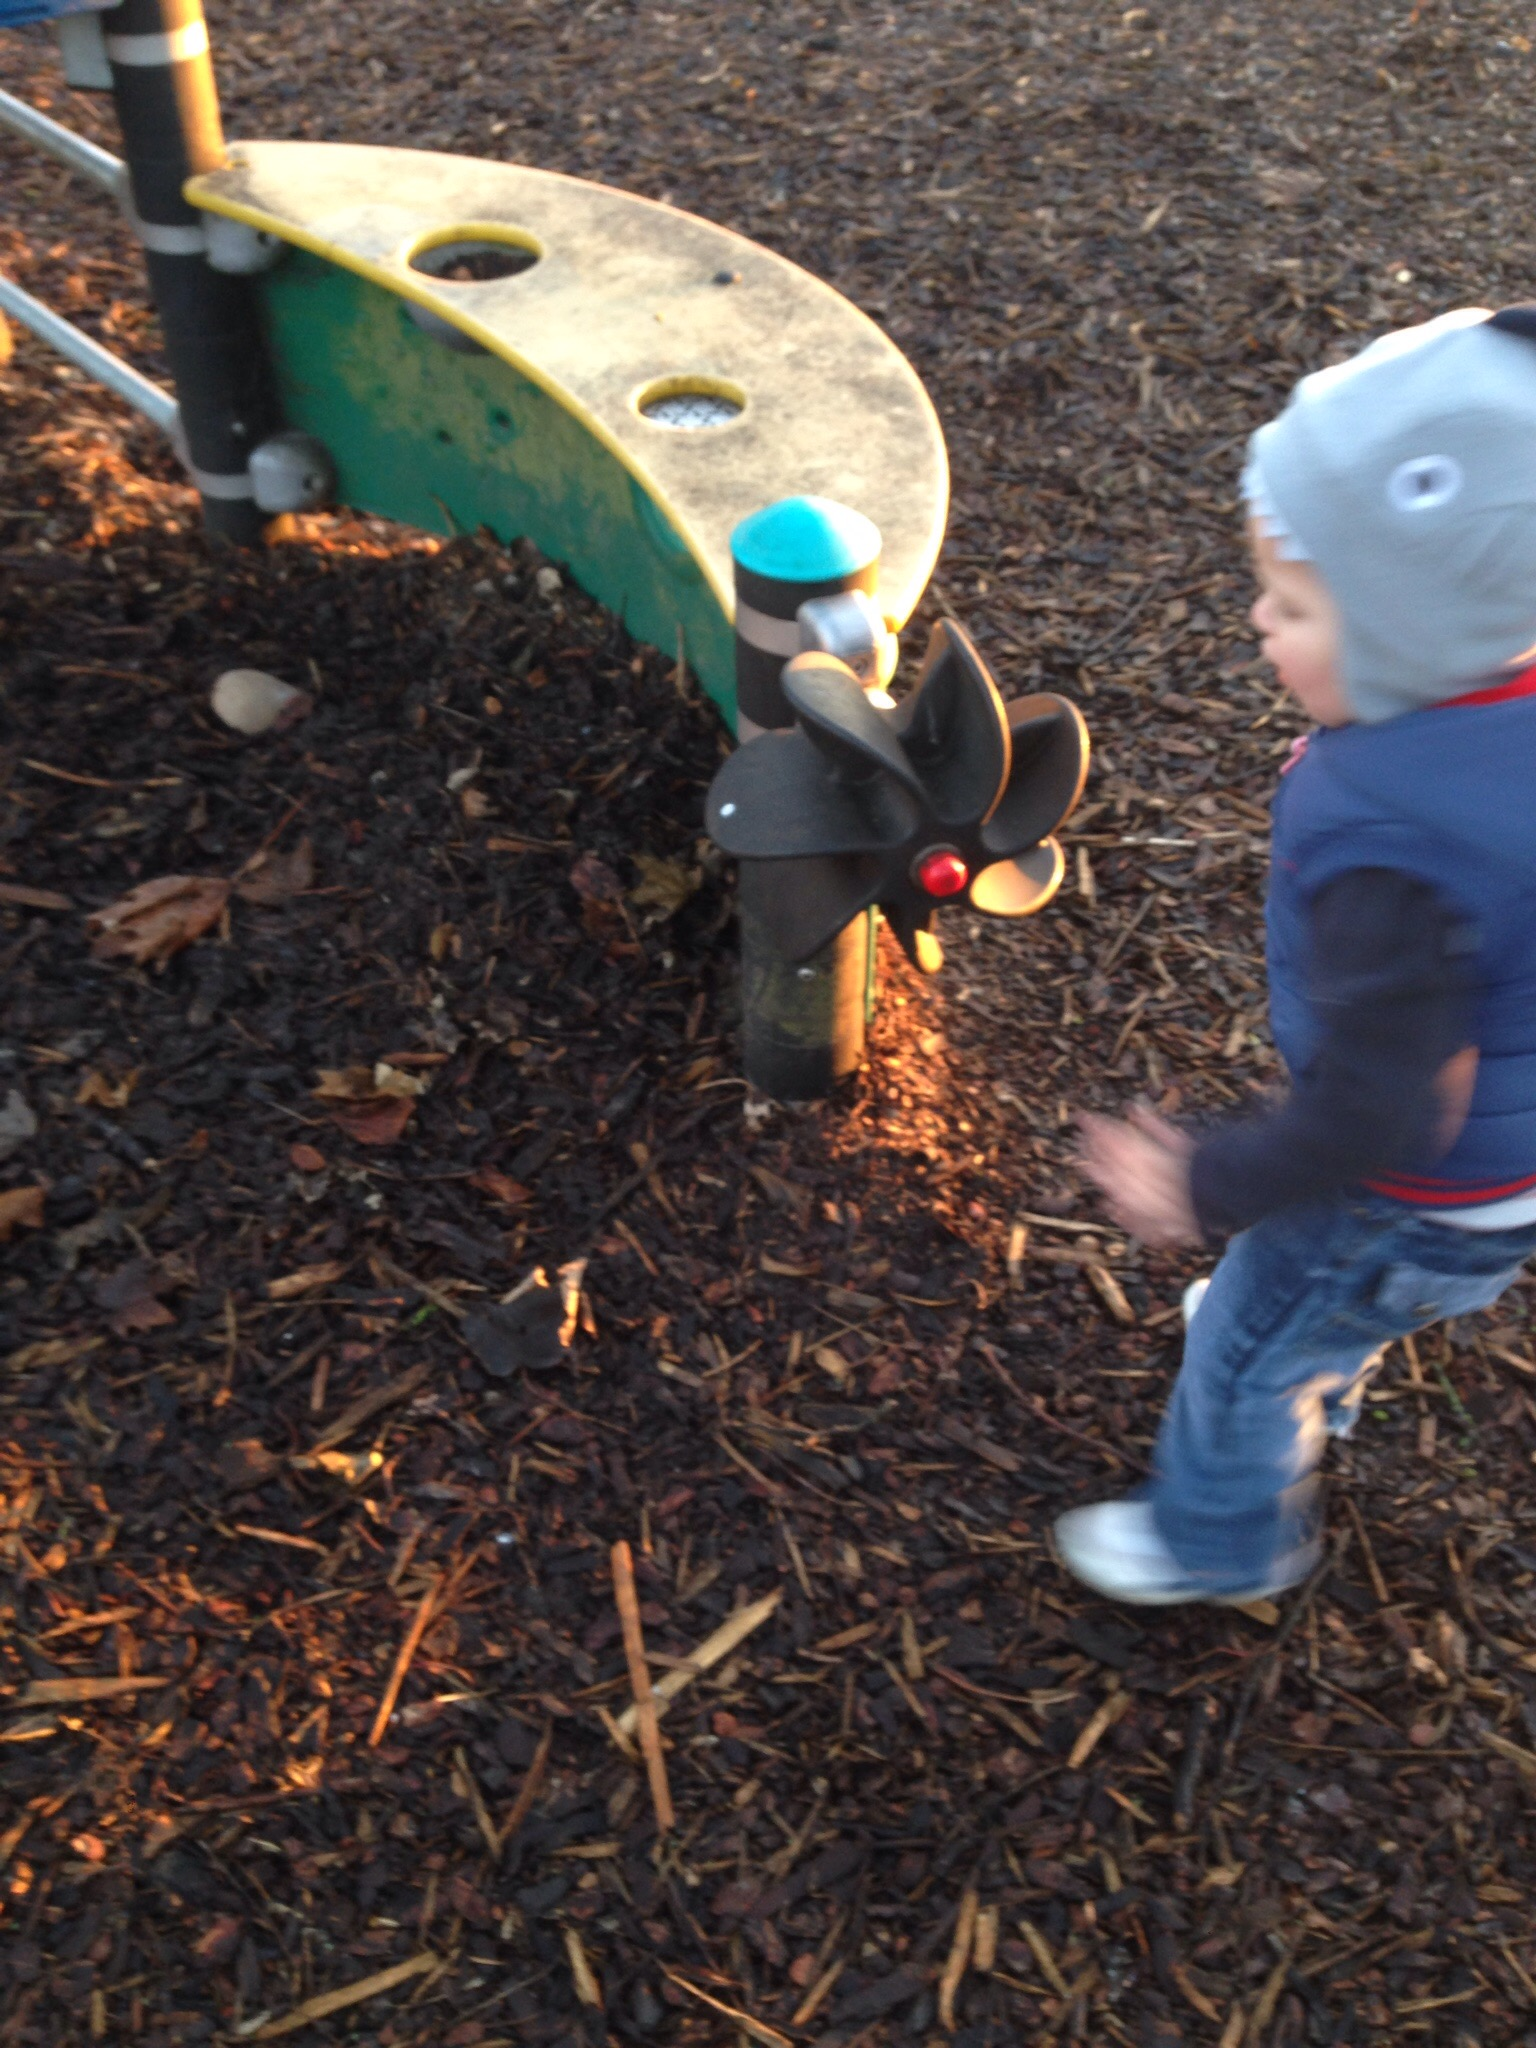 propeller in the park is lots of fun for a toddler